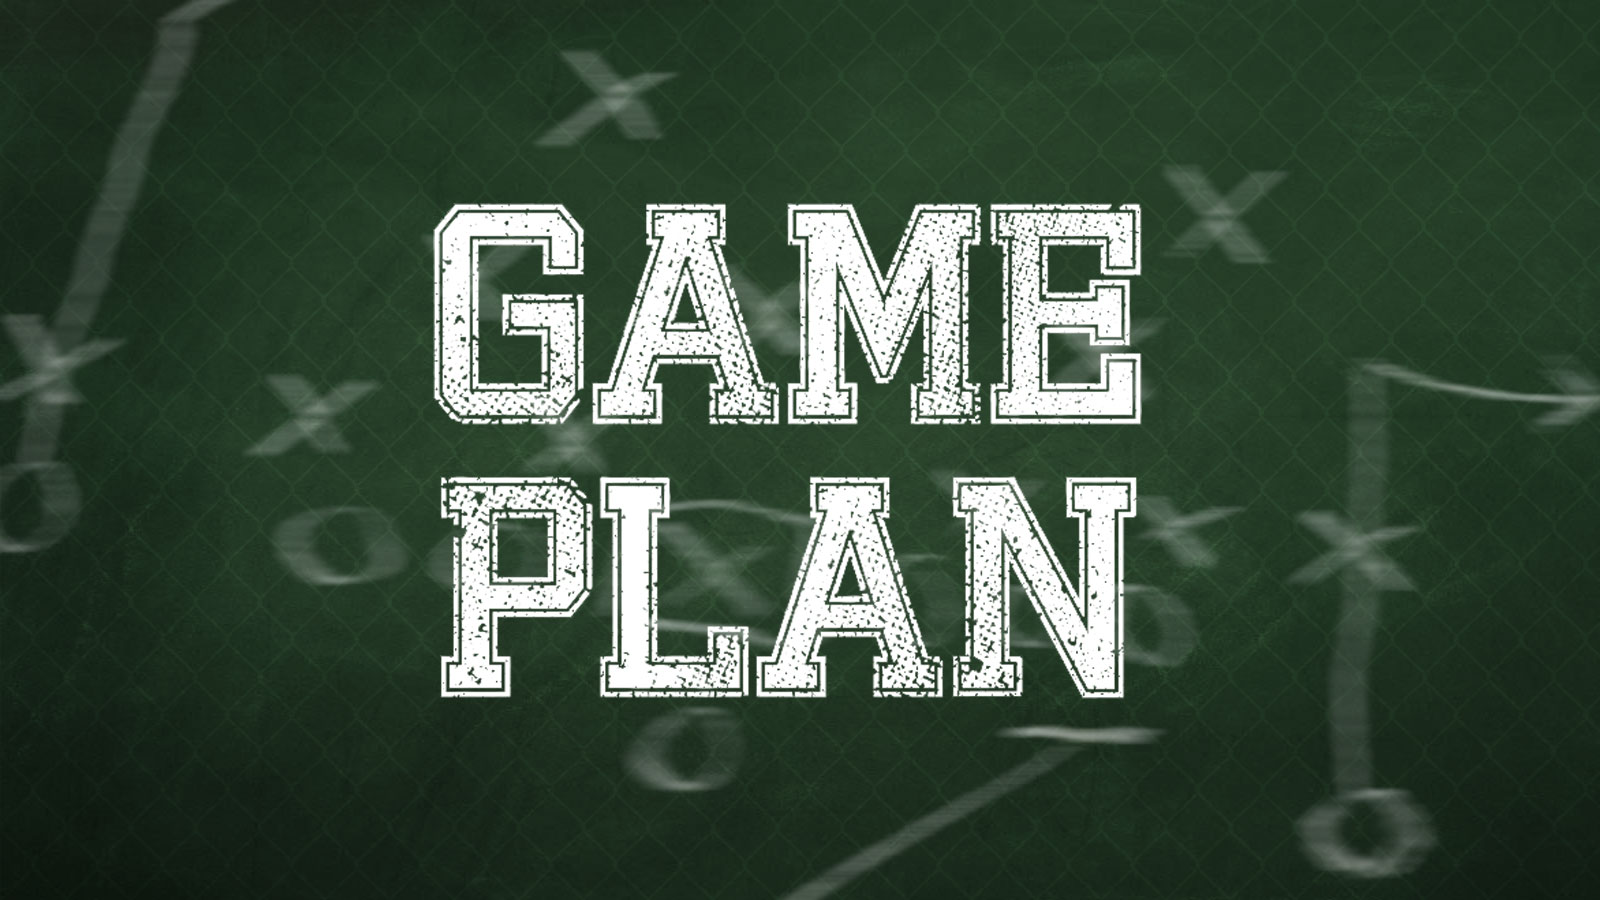 Http Chrisgoins Blogspot Com 2011 01 God Game Plan Part 4 Extended Notes Html